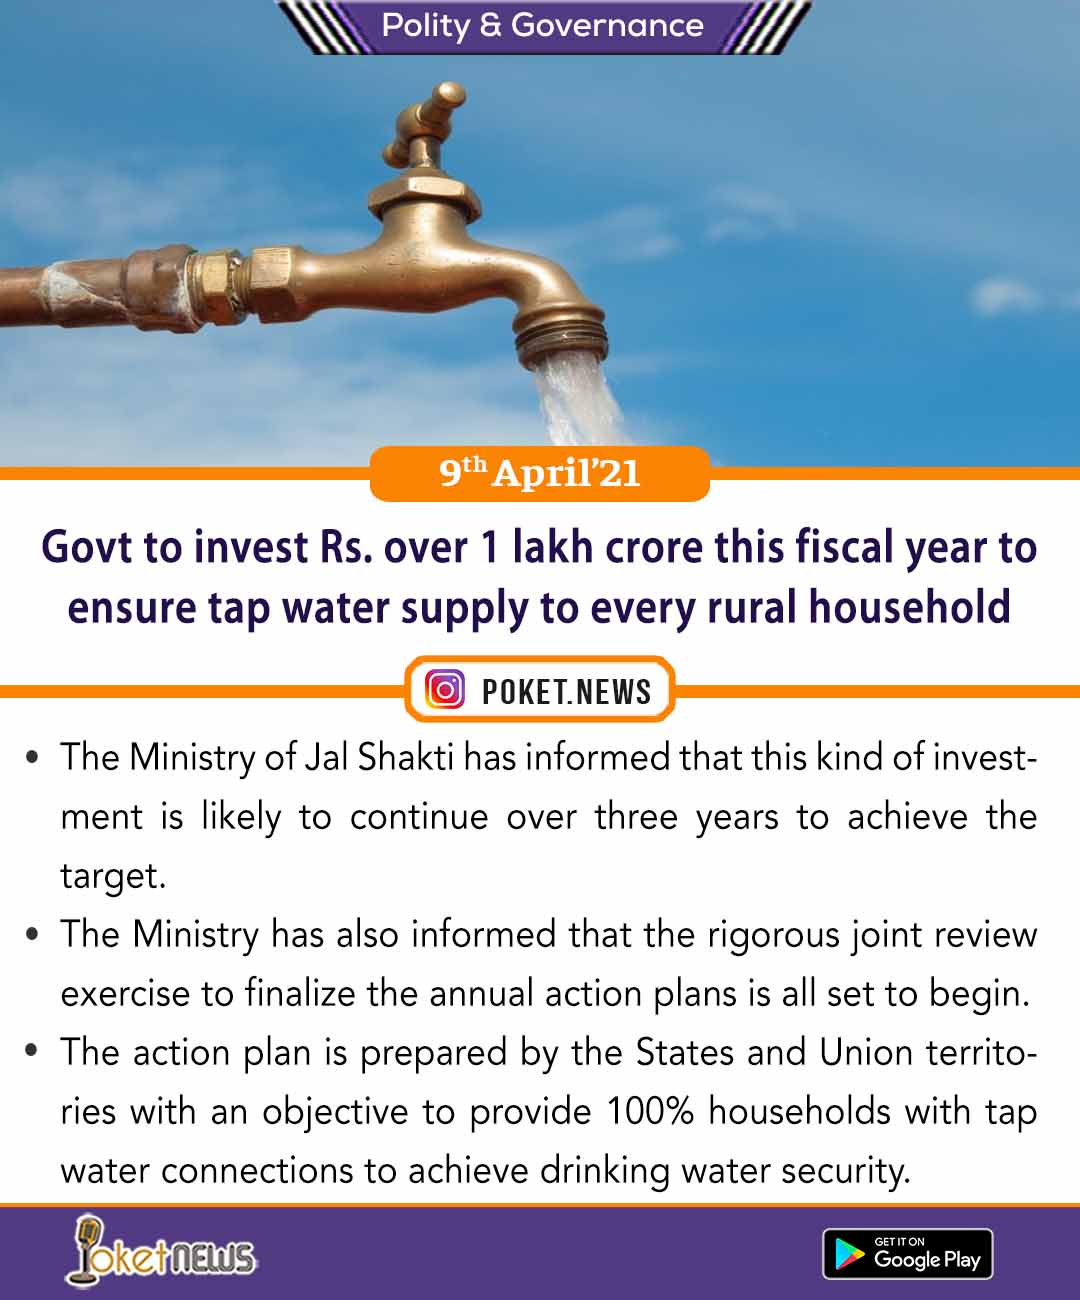 Govt to invest Rs. over 1 lakh crore this fiscal year to ensure tap water supply to every rural household